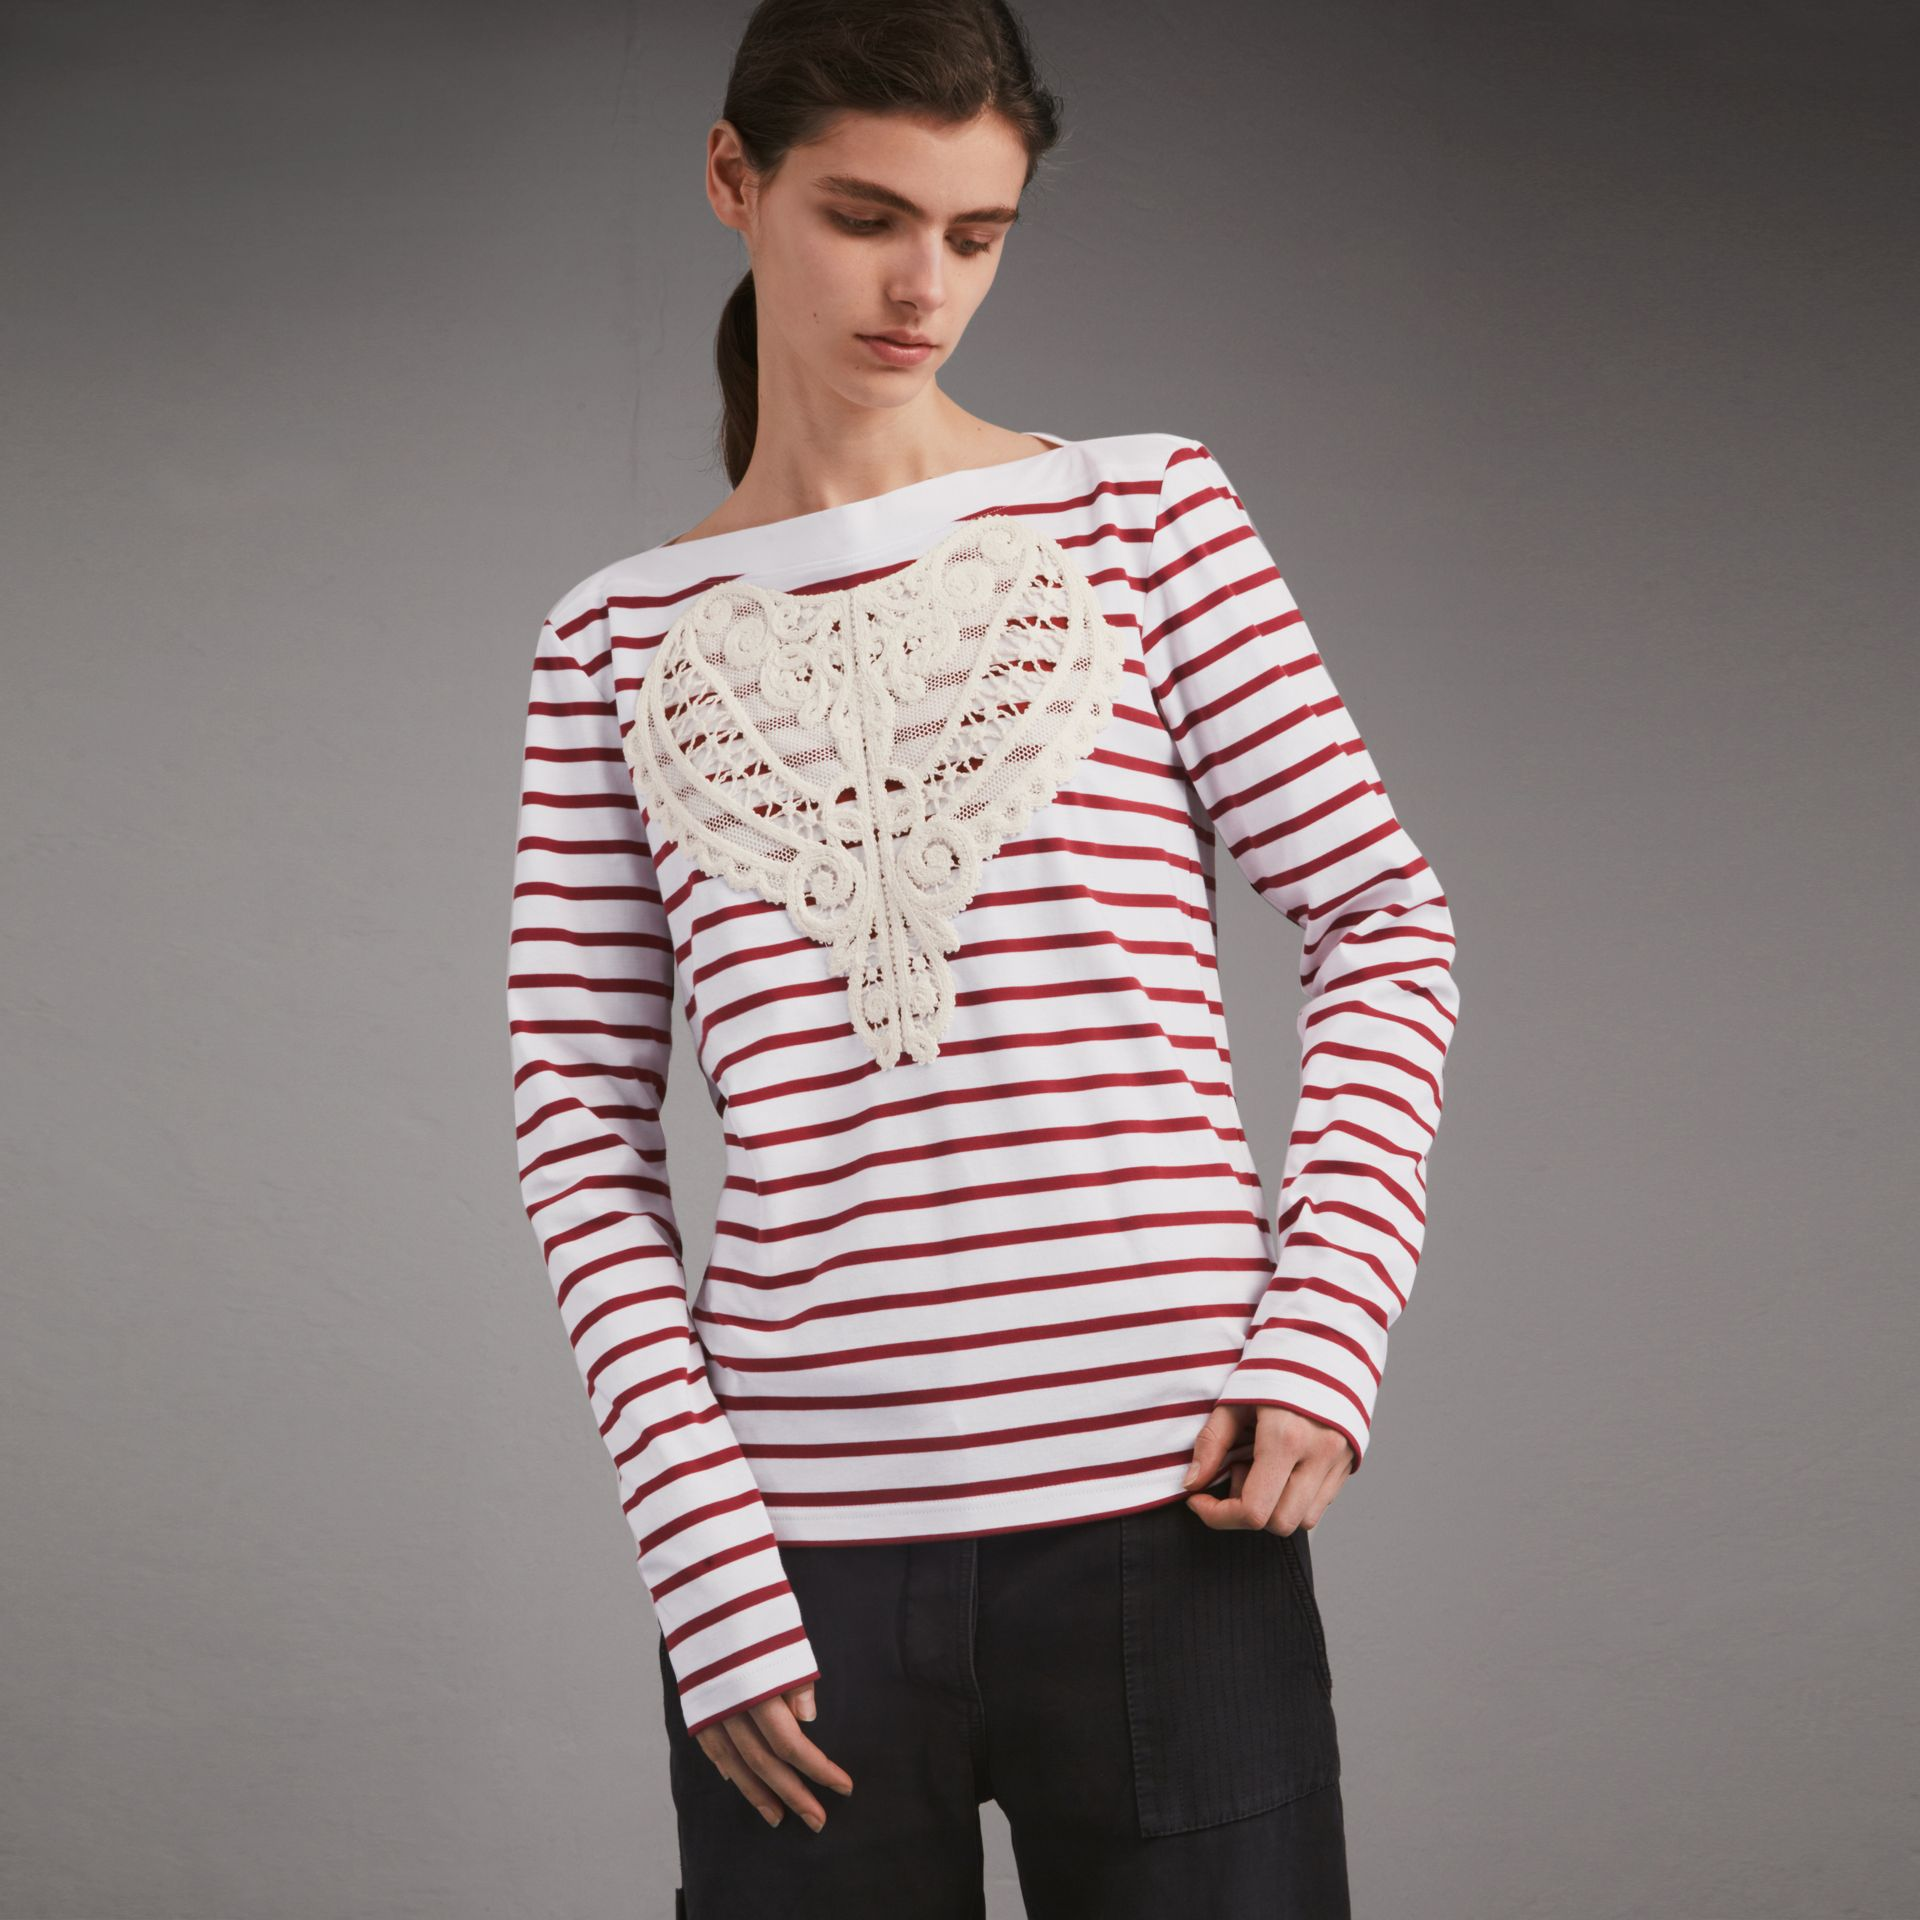 Unisex Breton Stripe Cotton Top with Lace Appliqué in Parade Red - Women | Burberry - gallery image 1